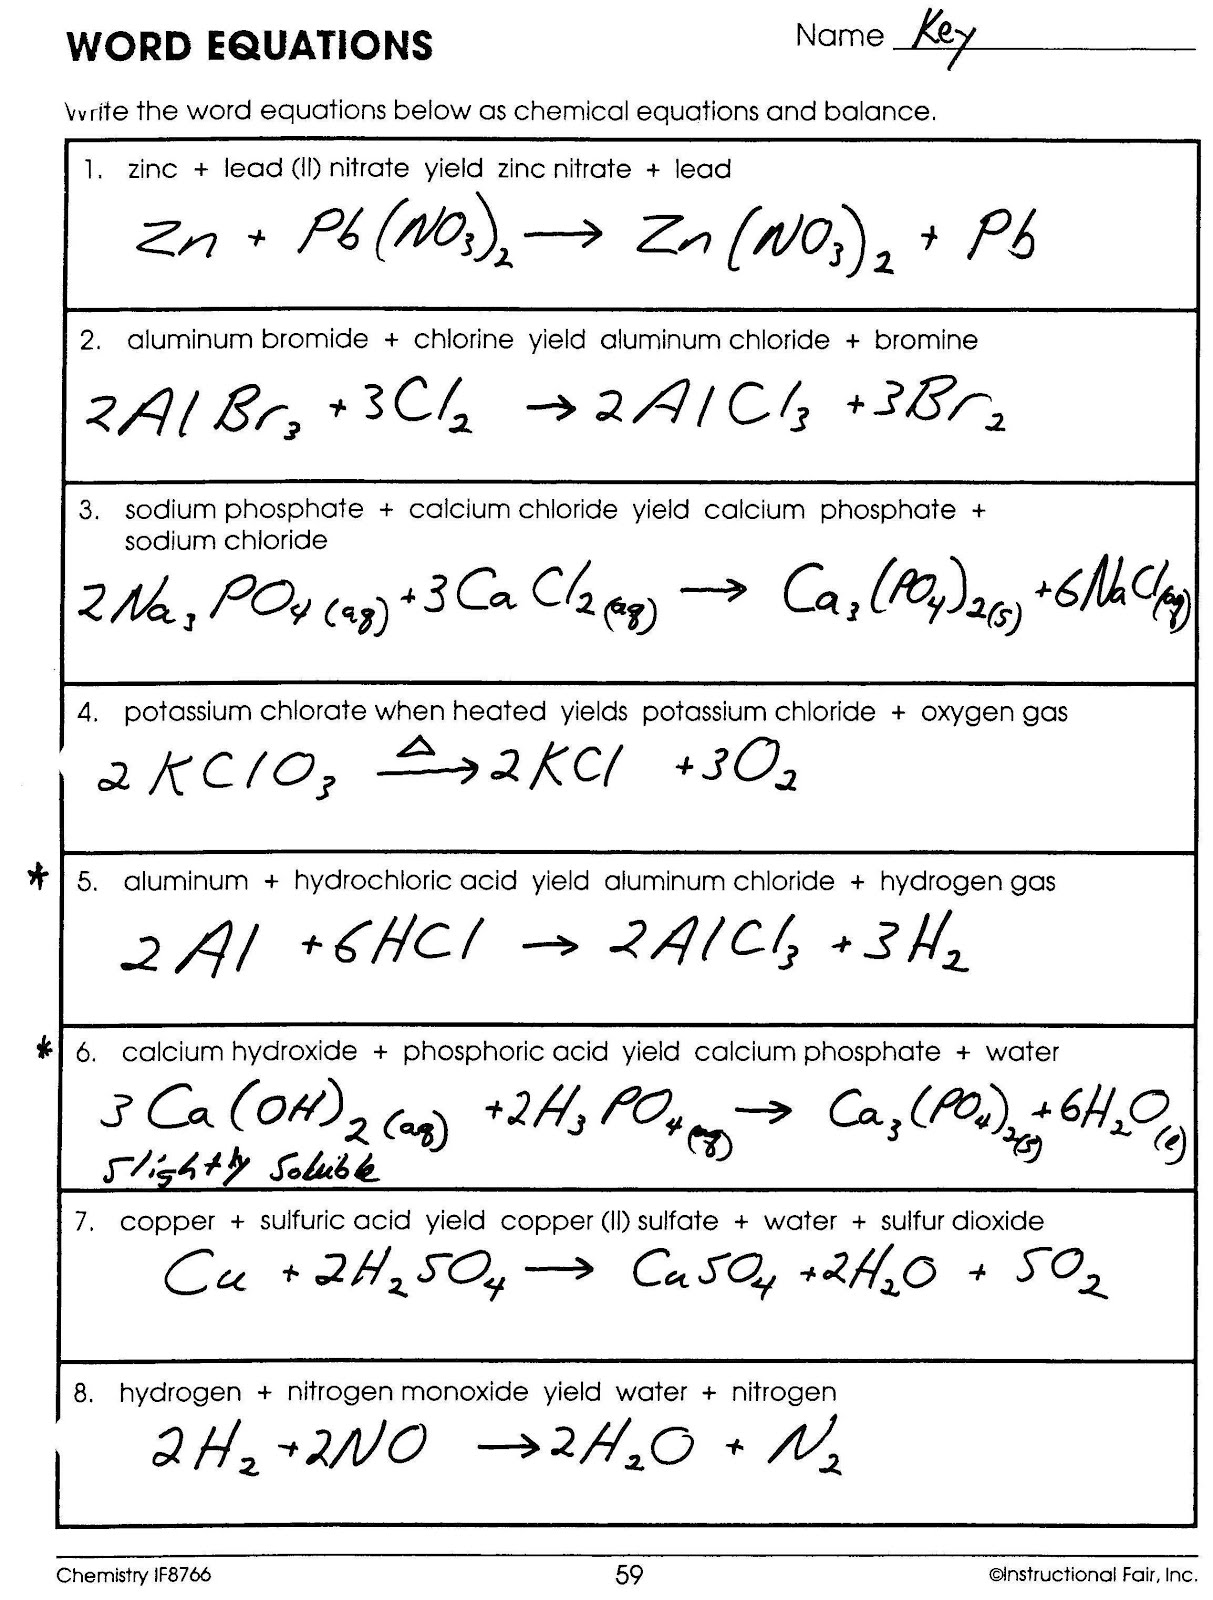 Mr Brueckners Chemistry Class HHS 201112 – Balancing Redox Equations Worksheet